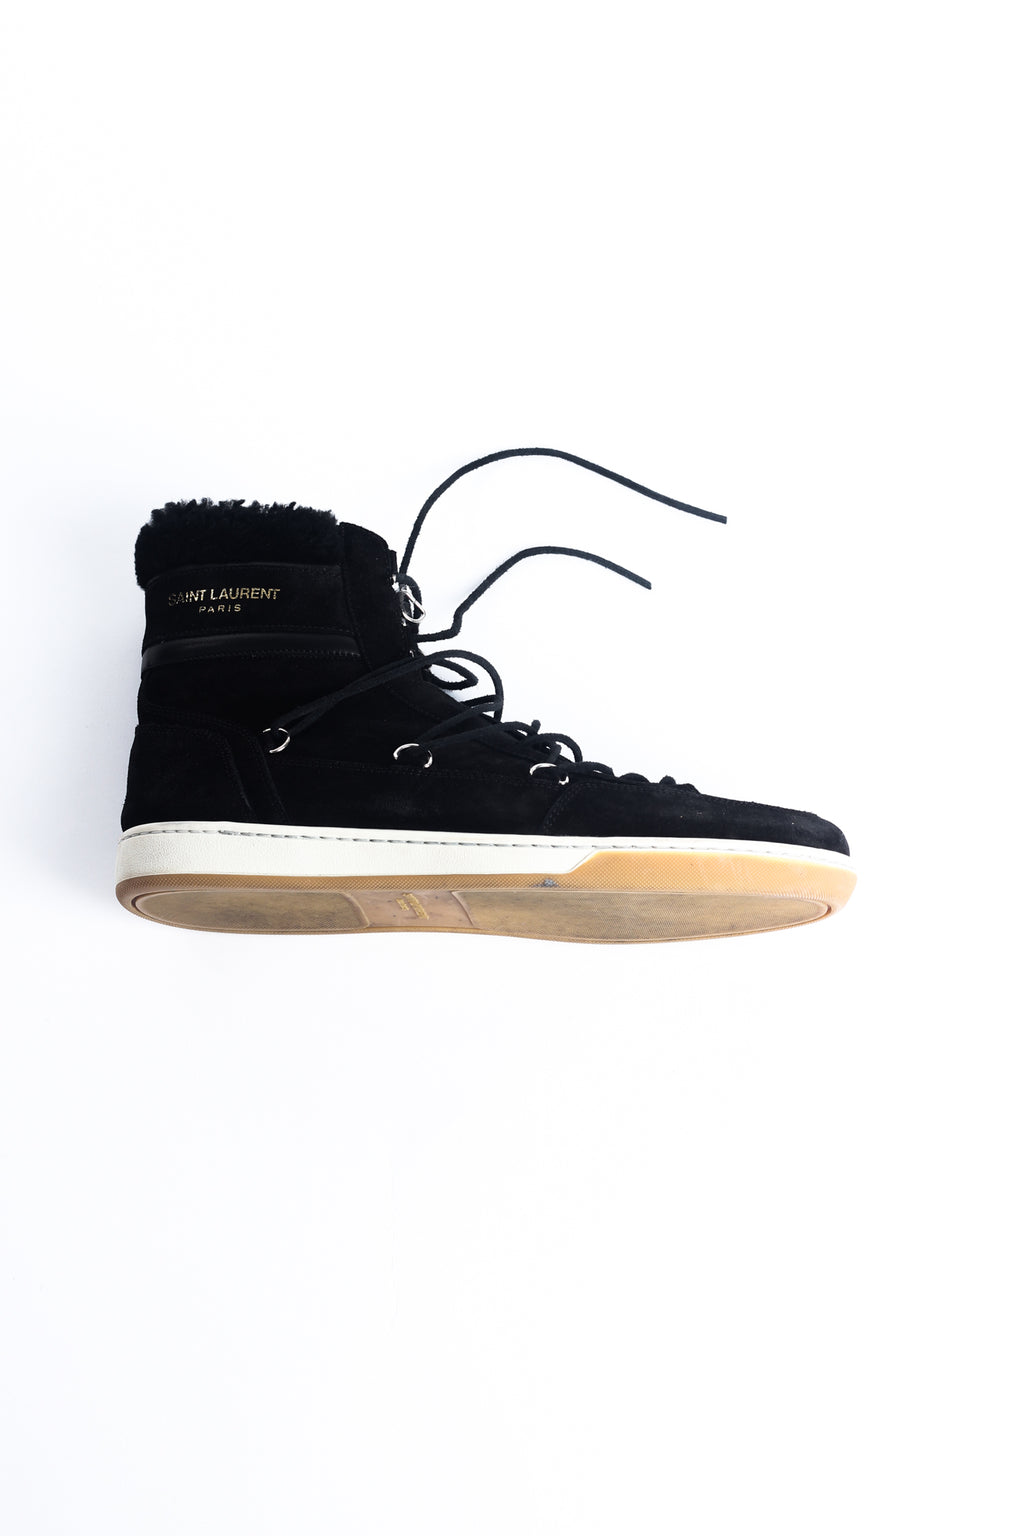 SAINT LAURENT Black HIGH TOP SNEAKER EU 44/ UK 10